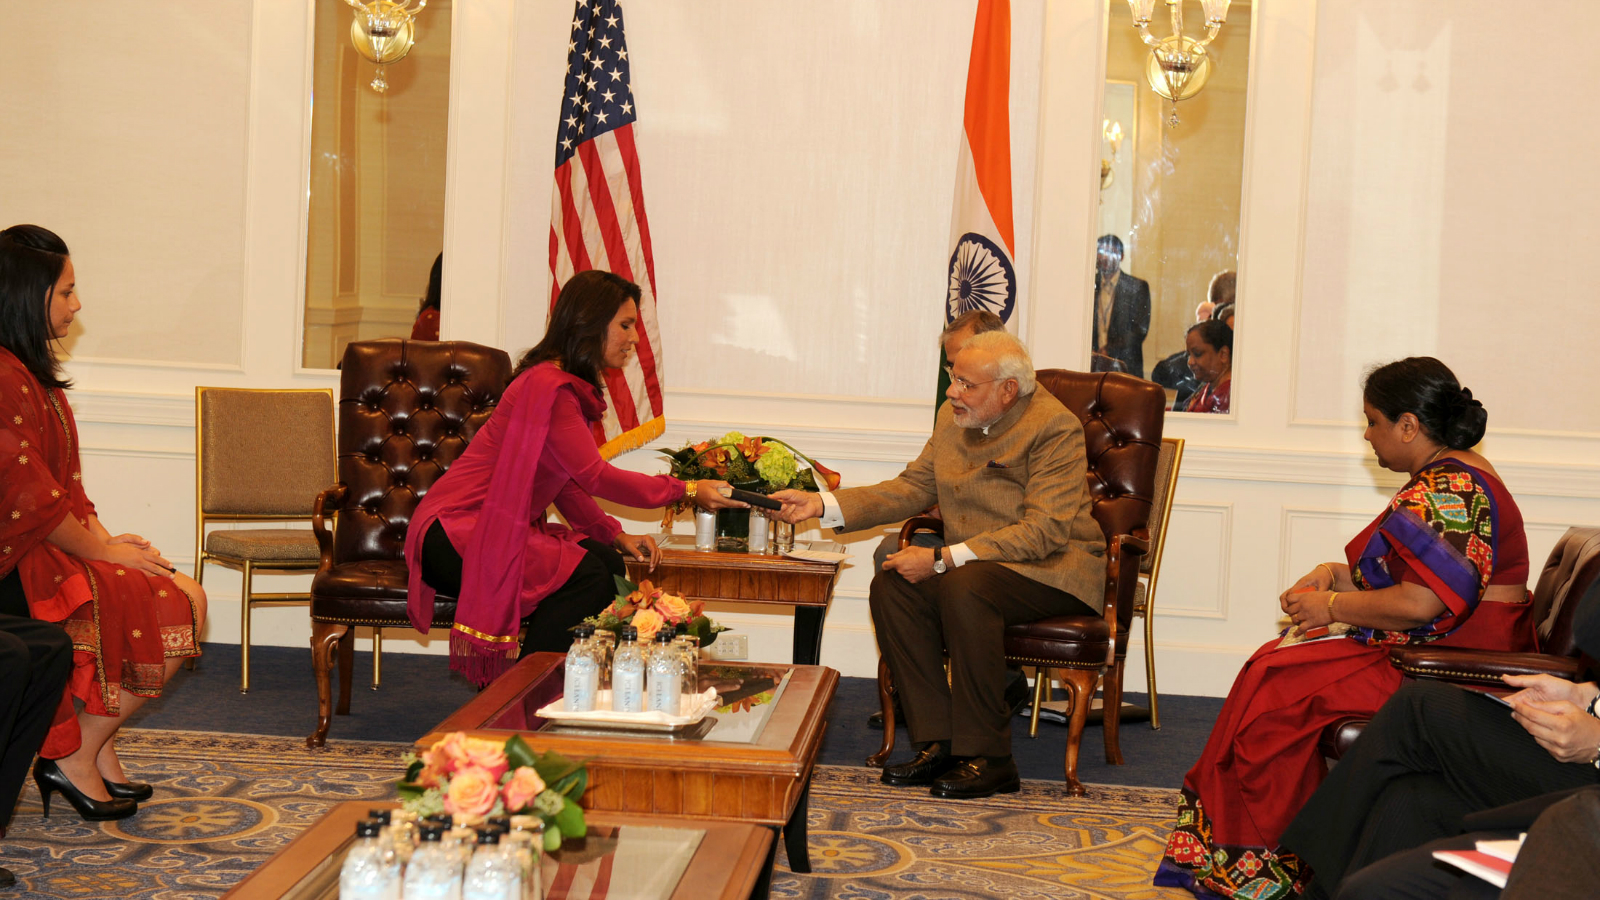 The Member of House of Representatives of the United States, Ms. Tulsi Gabbard calls on the Prime Minister, Shri Narendra Modi, in New York on September 28, 2014. http://pib.nic.in/newsite/Printphoto.aspx?relid=57335